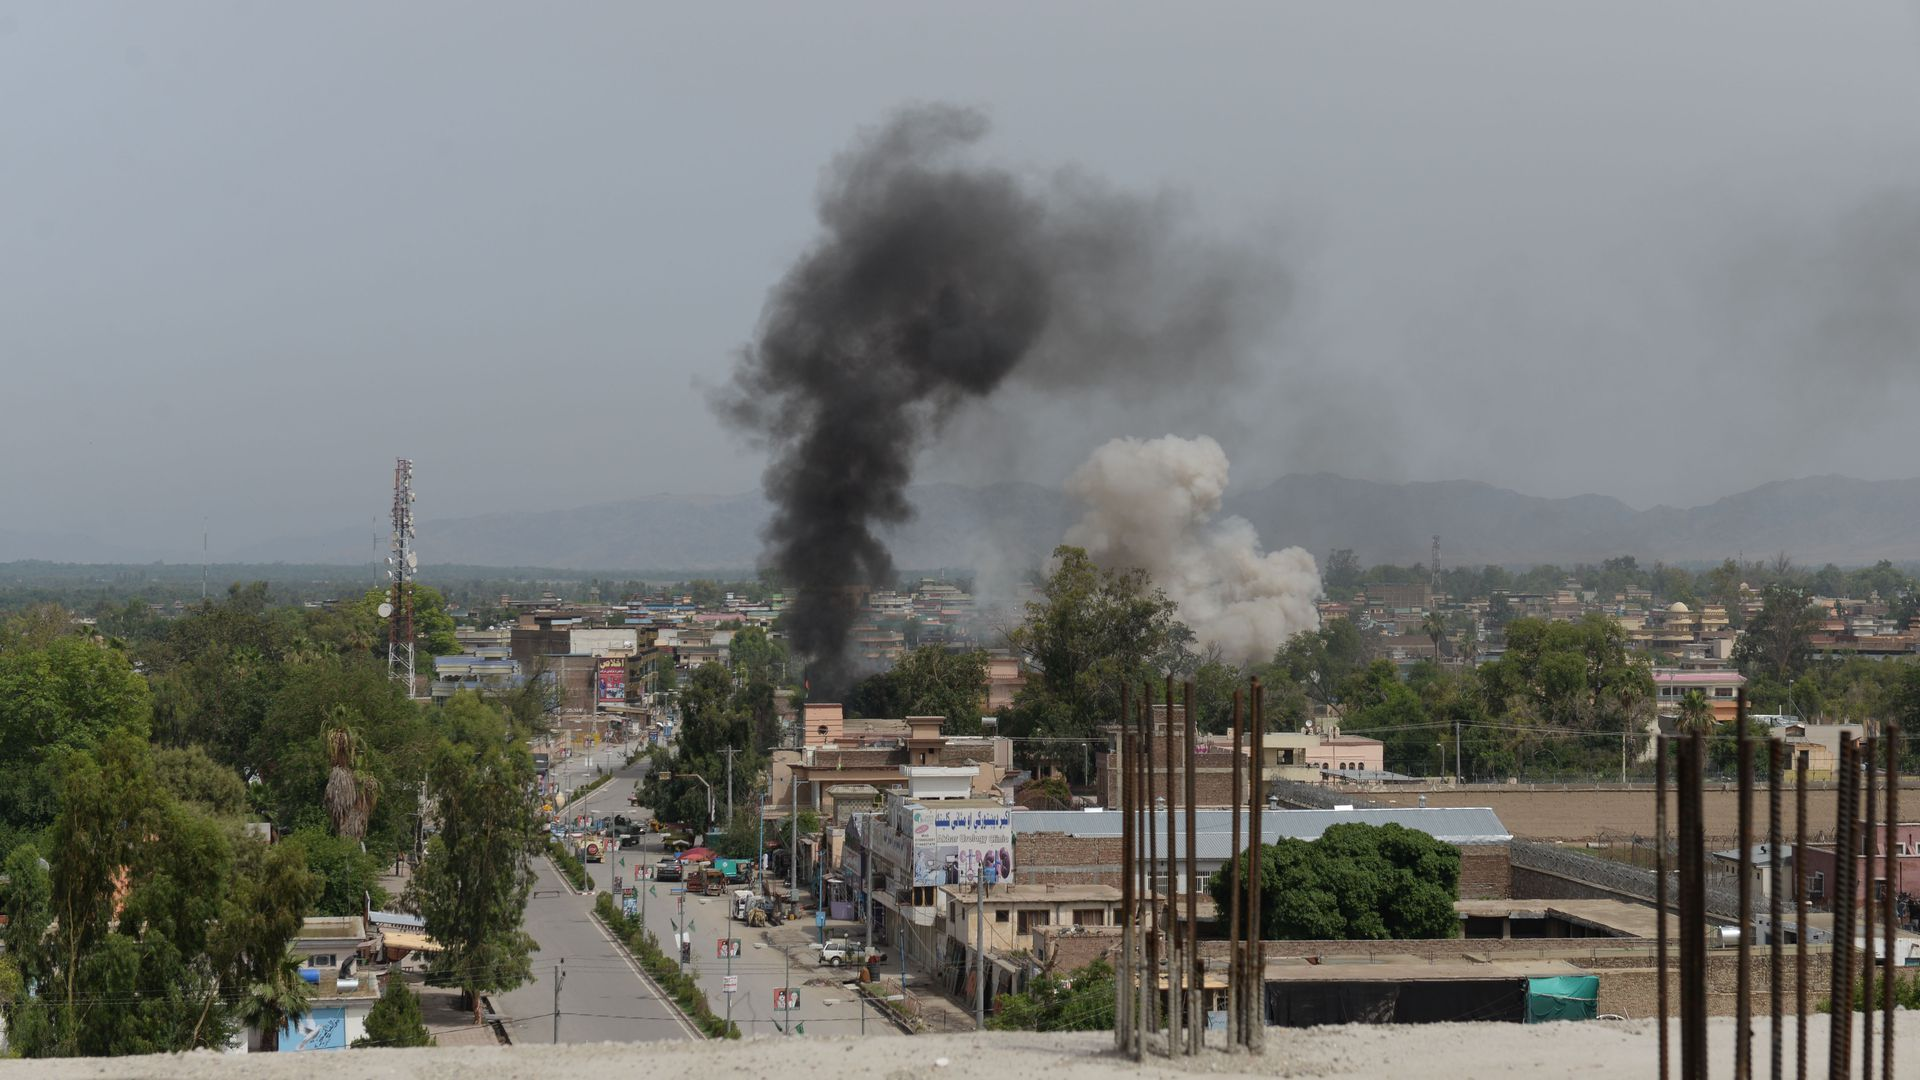 Smoke rises from a building during an ongoing attack between Afghan security force and suicide attackers at a government building in Jalalabad on May 13, 2018.